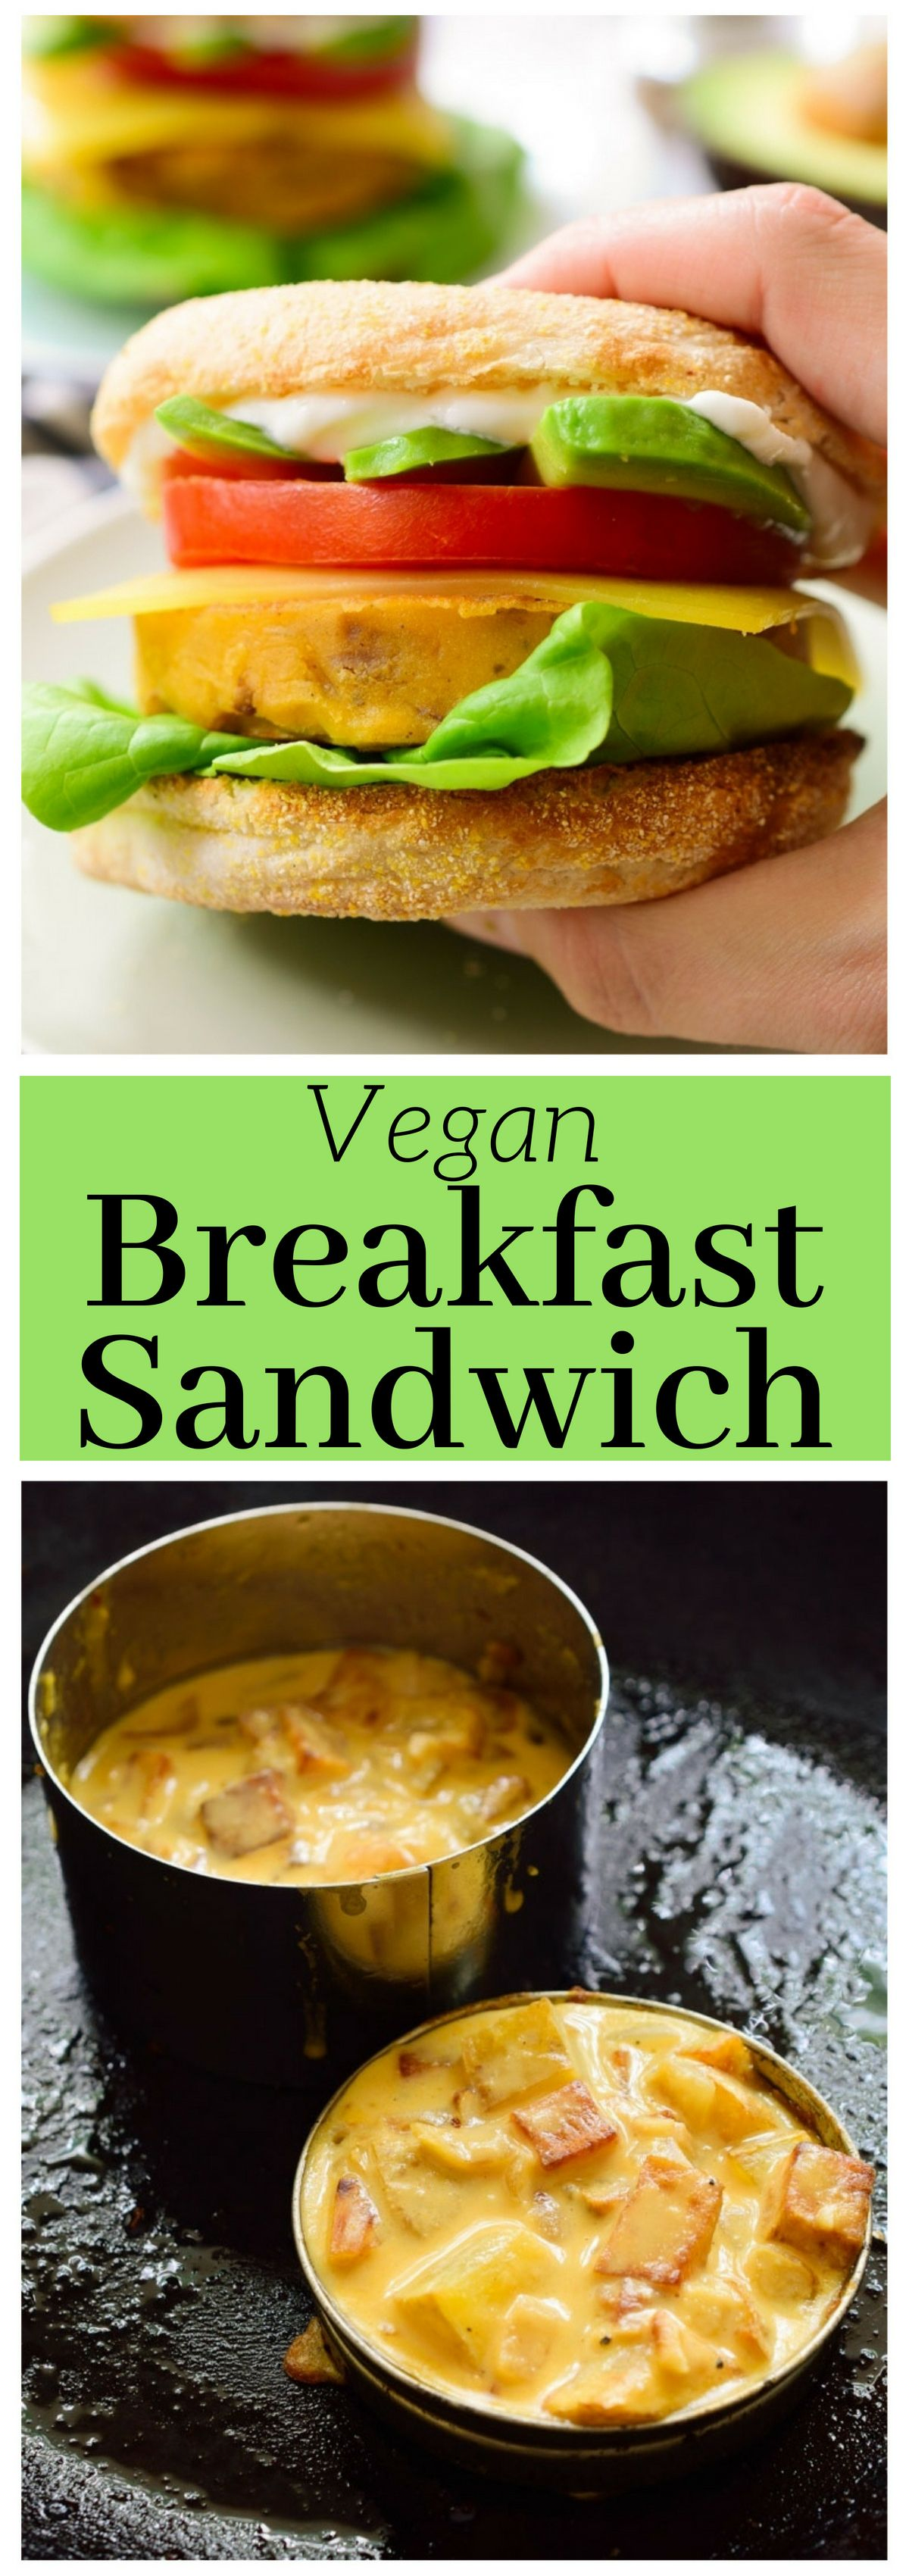 This Vegan Breakfast Sandwich Is Tofu Free And Makes A Delicious Sunday Brunch This Sandwich Features An Egg Vegan Sandwich Vegan English Muffins Vegan Eating